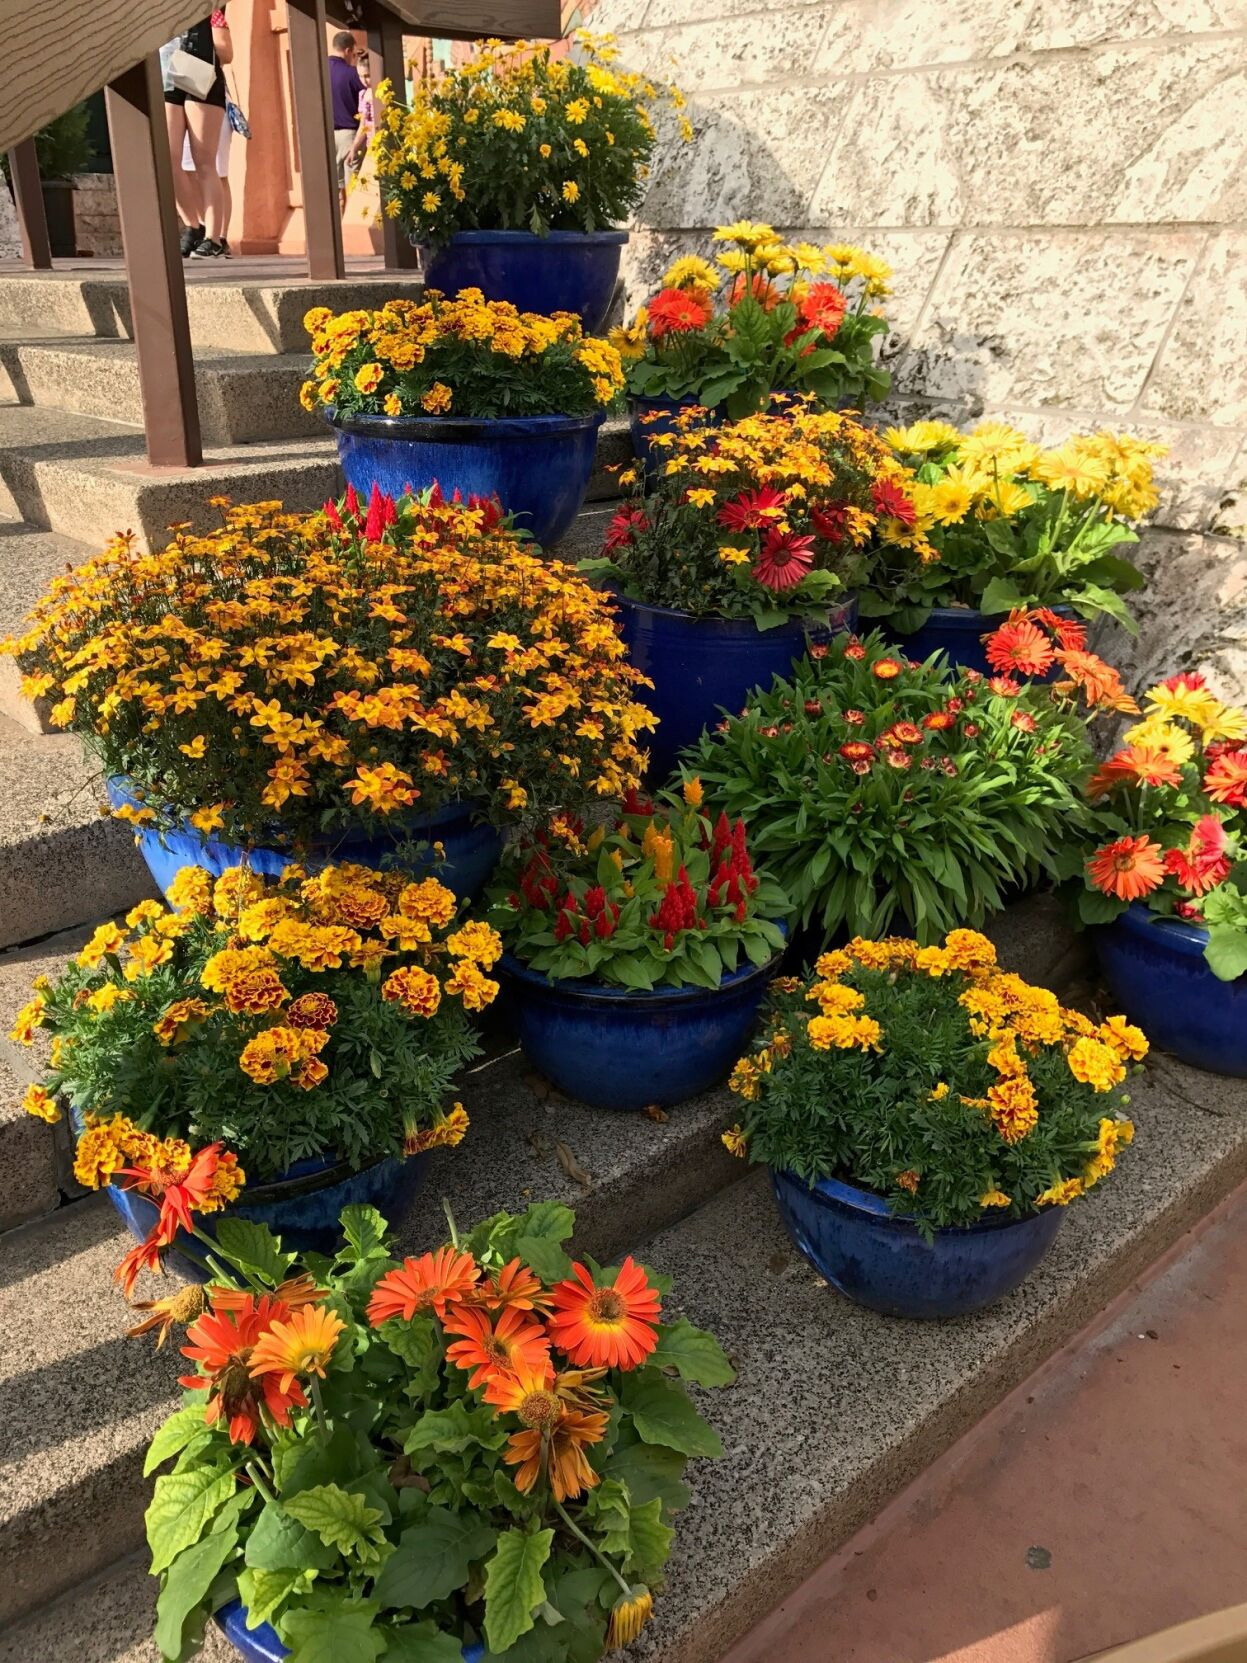 Grouping of colorful pots and assorted plants